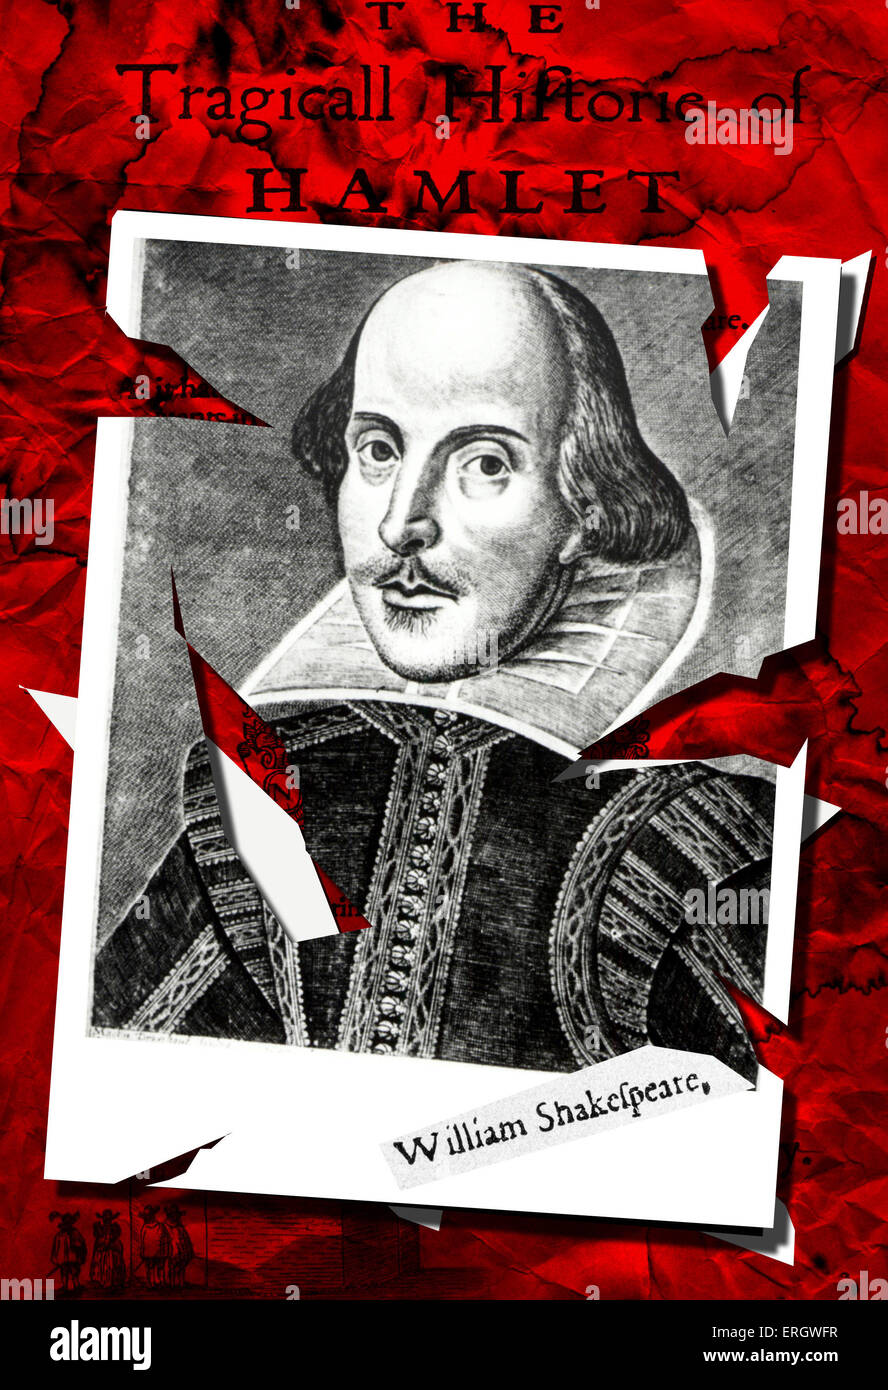 William Shakespeare collage compilation by Oscar Vila Nieto - Stock Image